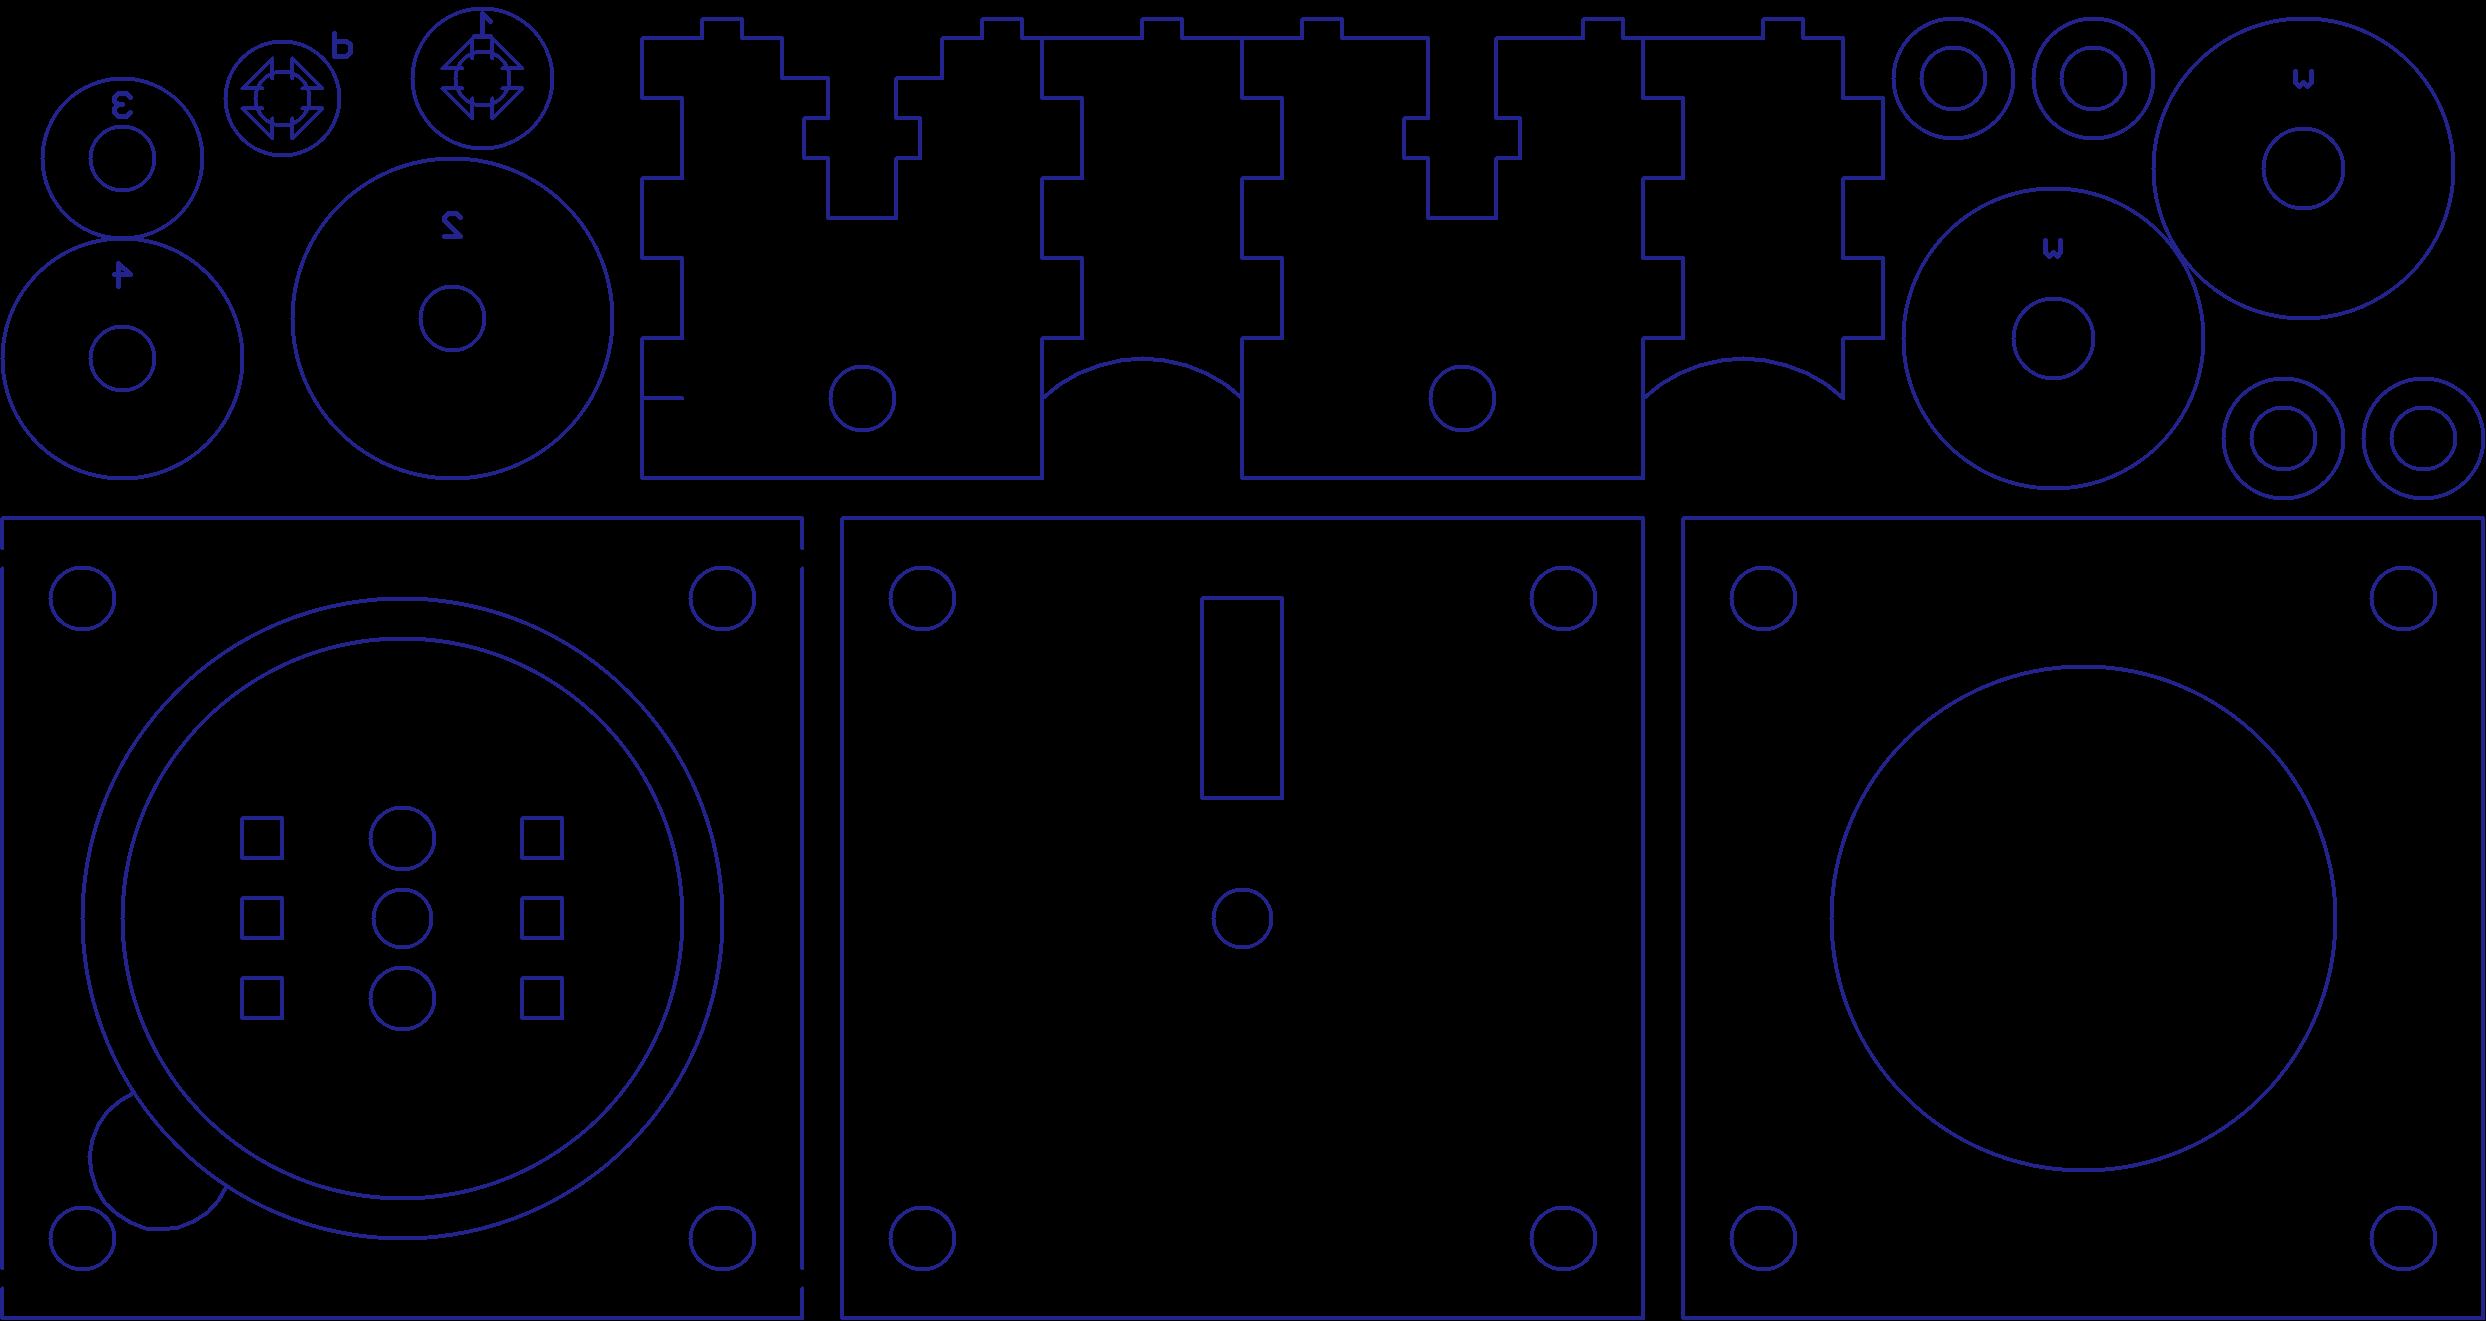 Tiny-swerve V1 drawn out in Eagle. Because for 2D cad, it really doesn't matter what you're using